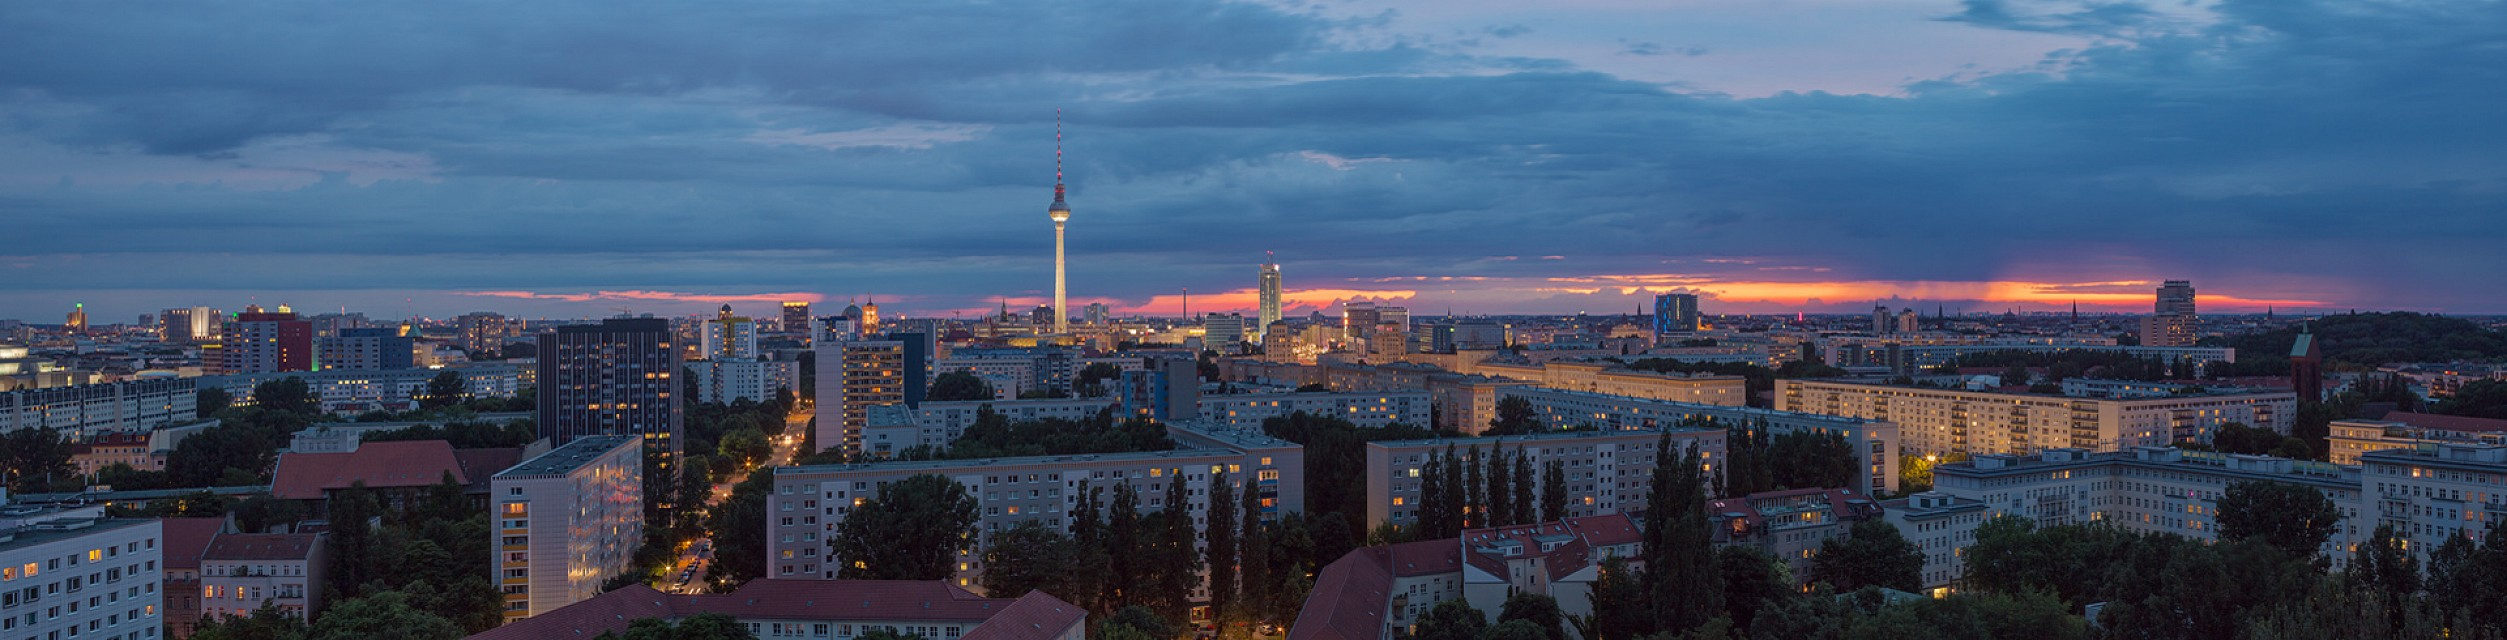 Skyline #II -